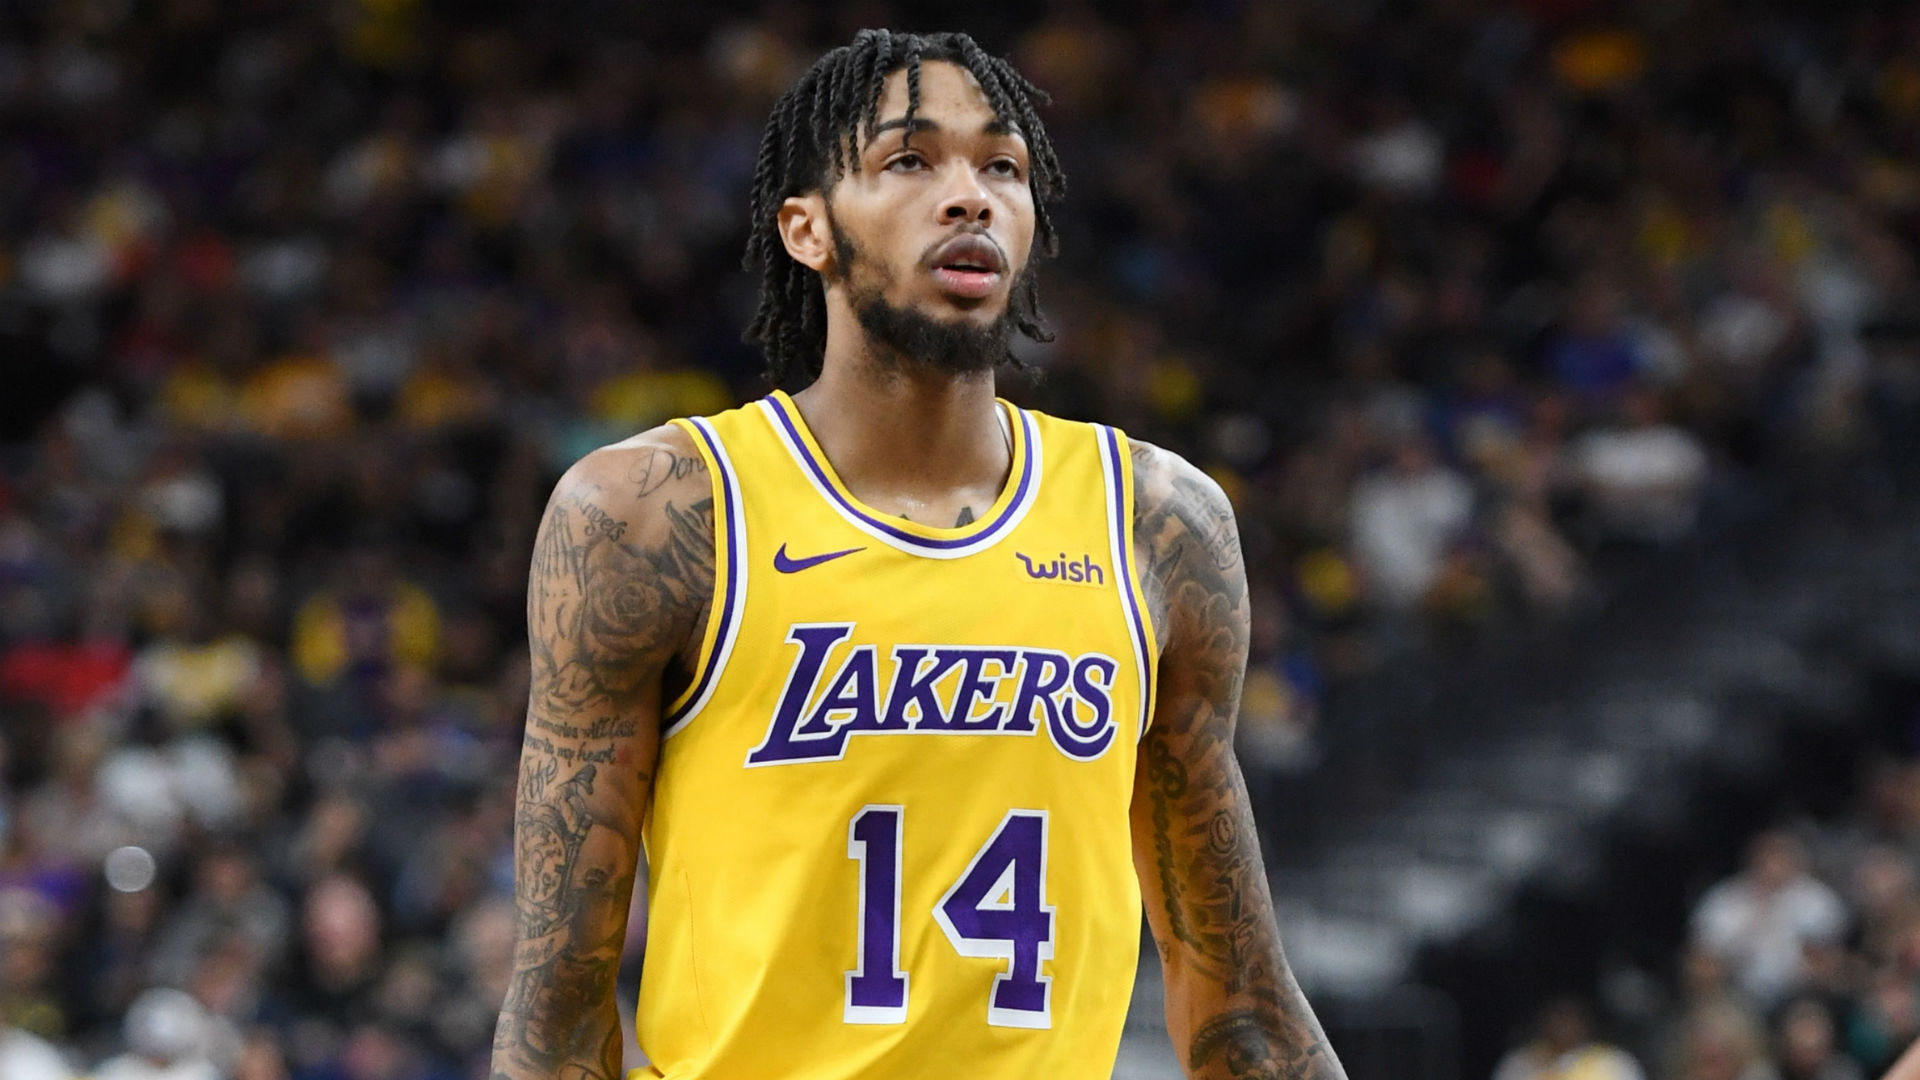 Lakers forward Ingram plans to be back next season after surgery